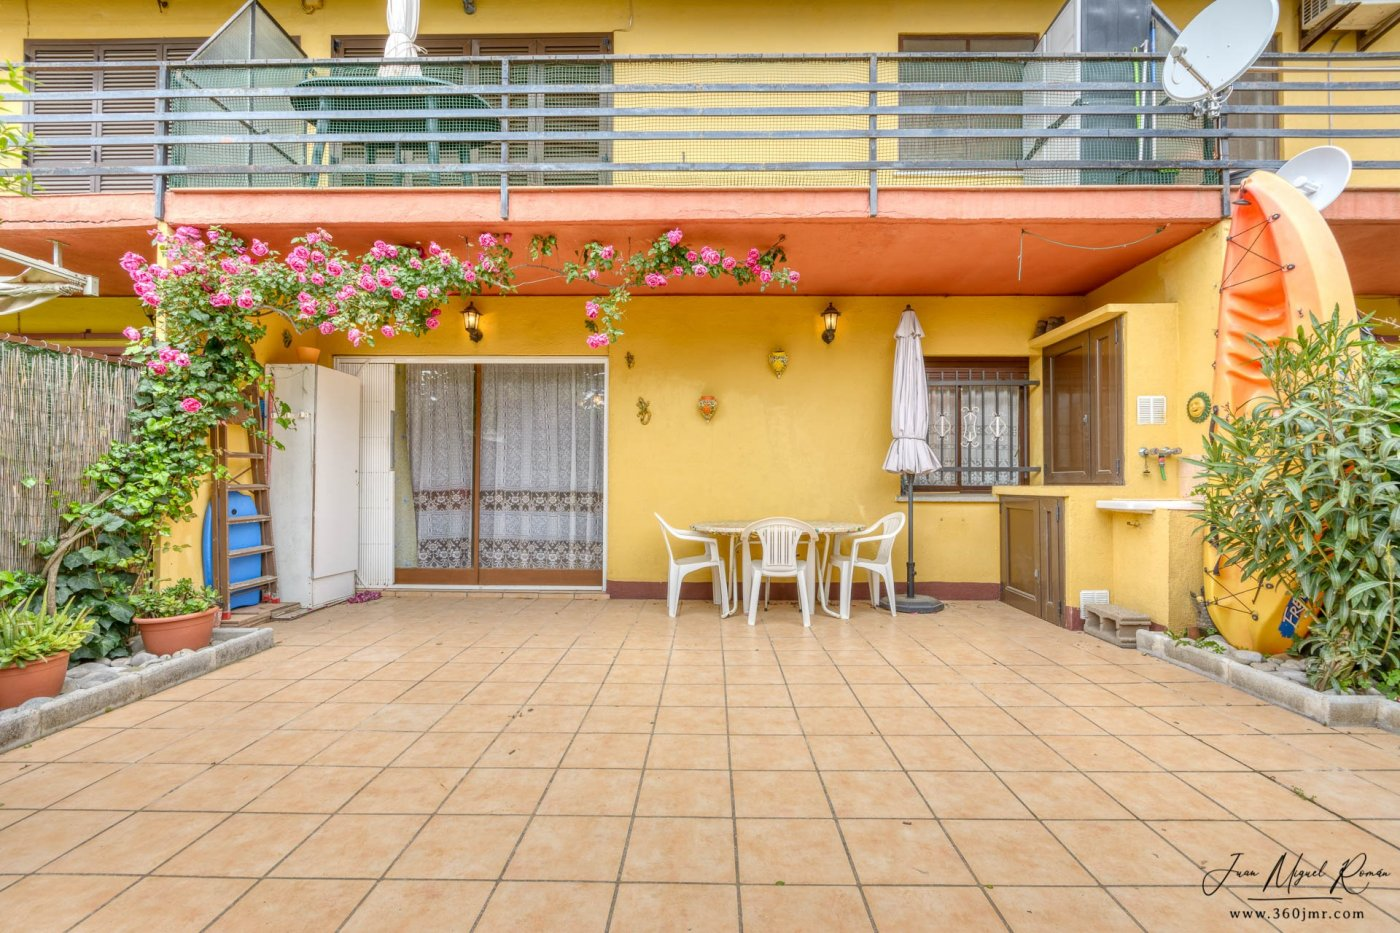 Ground Floor Apartment for sale in Bon relax, Sant Pere Pescador